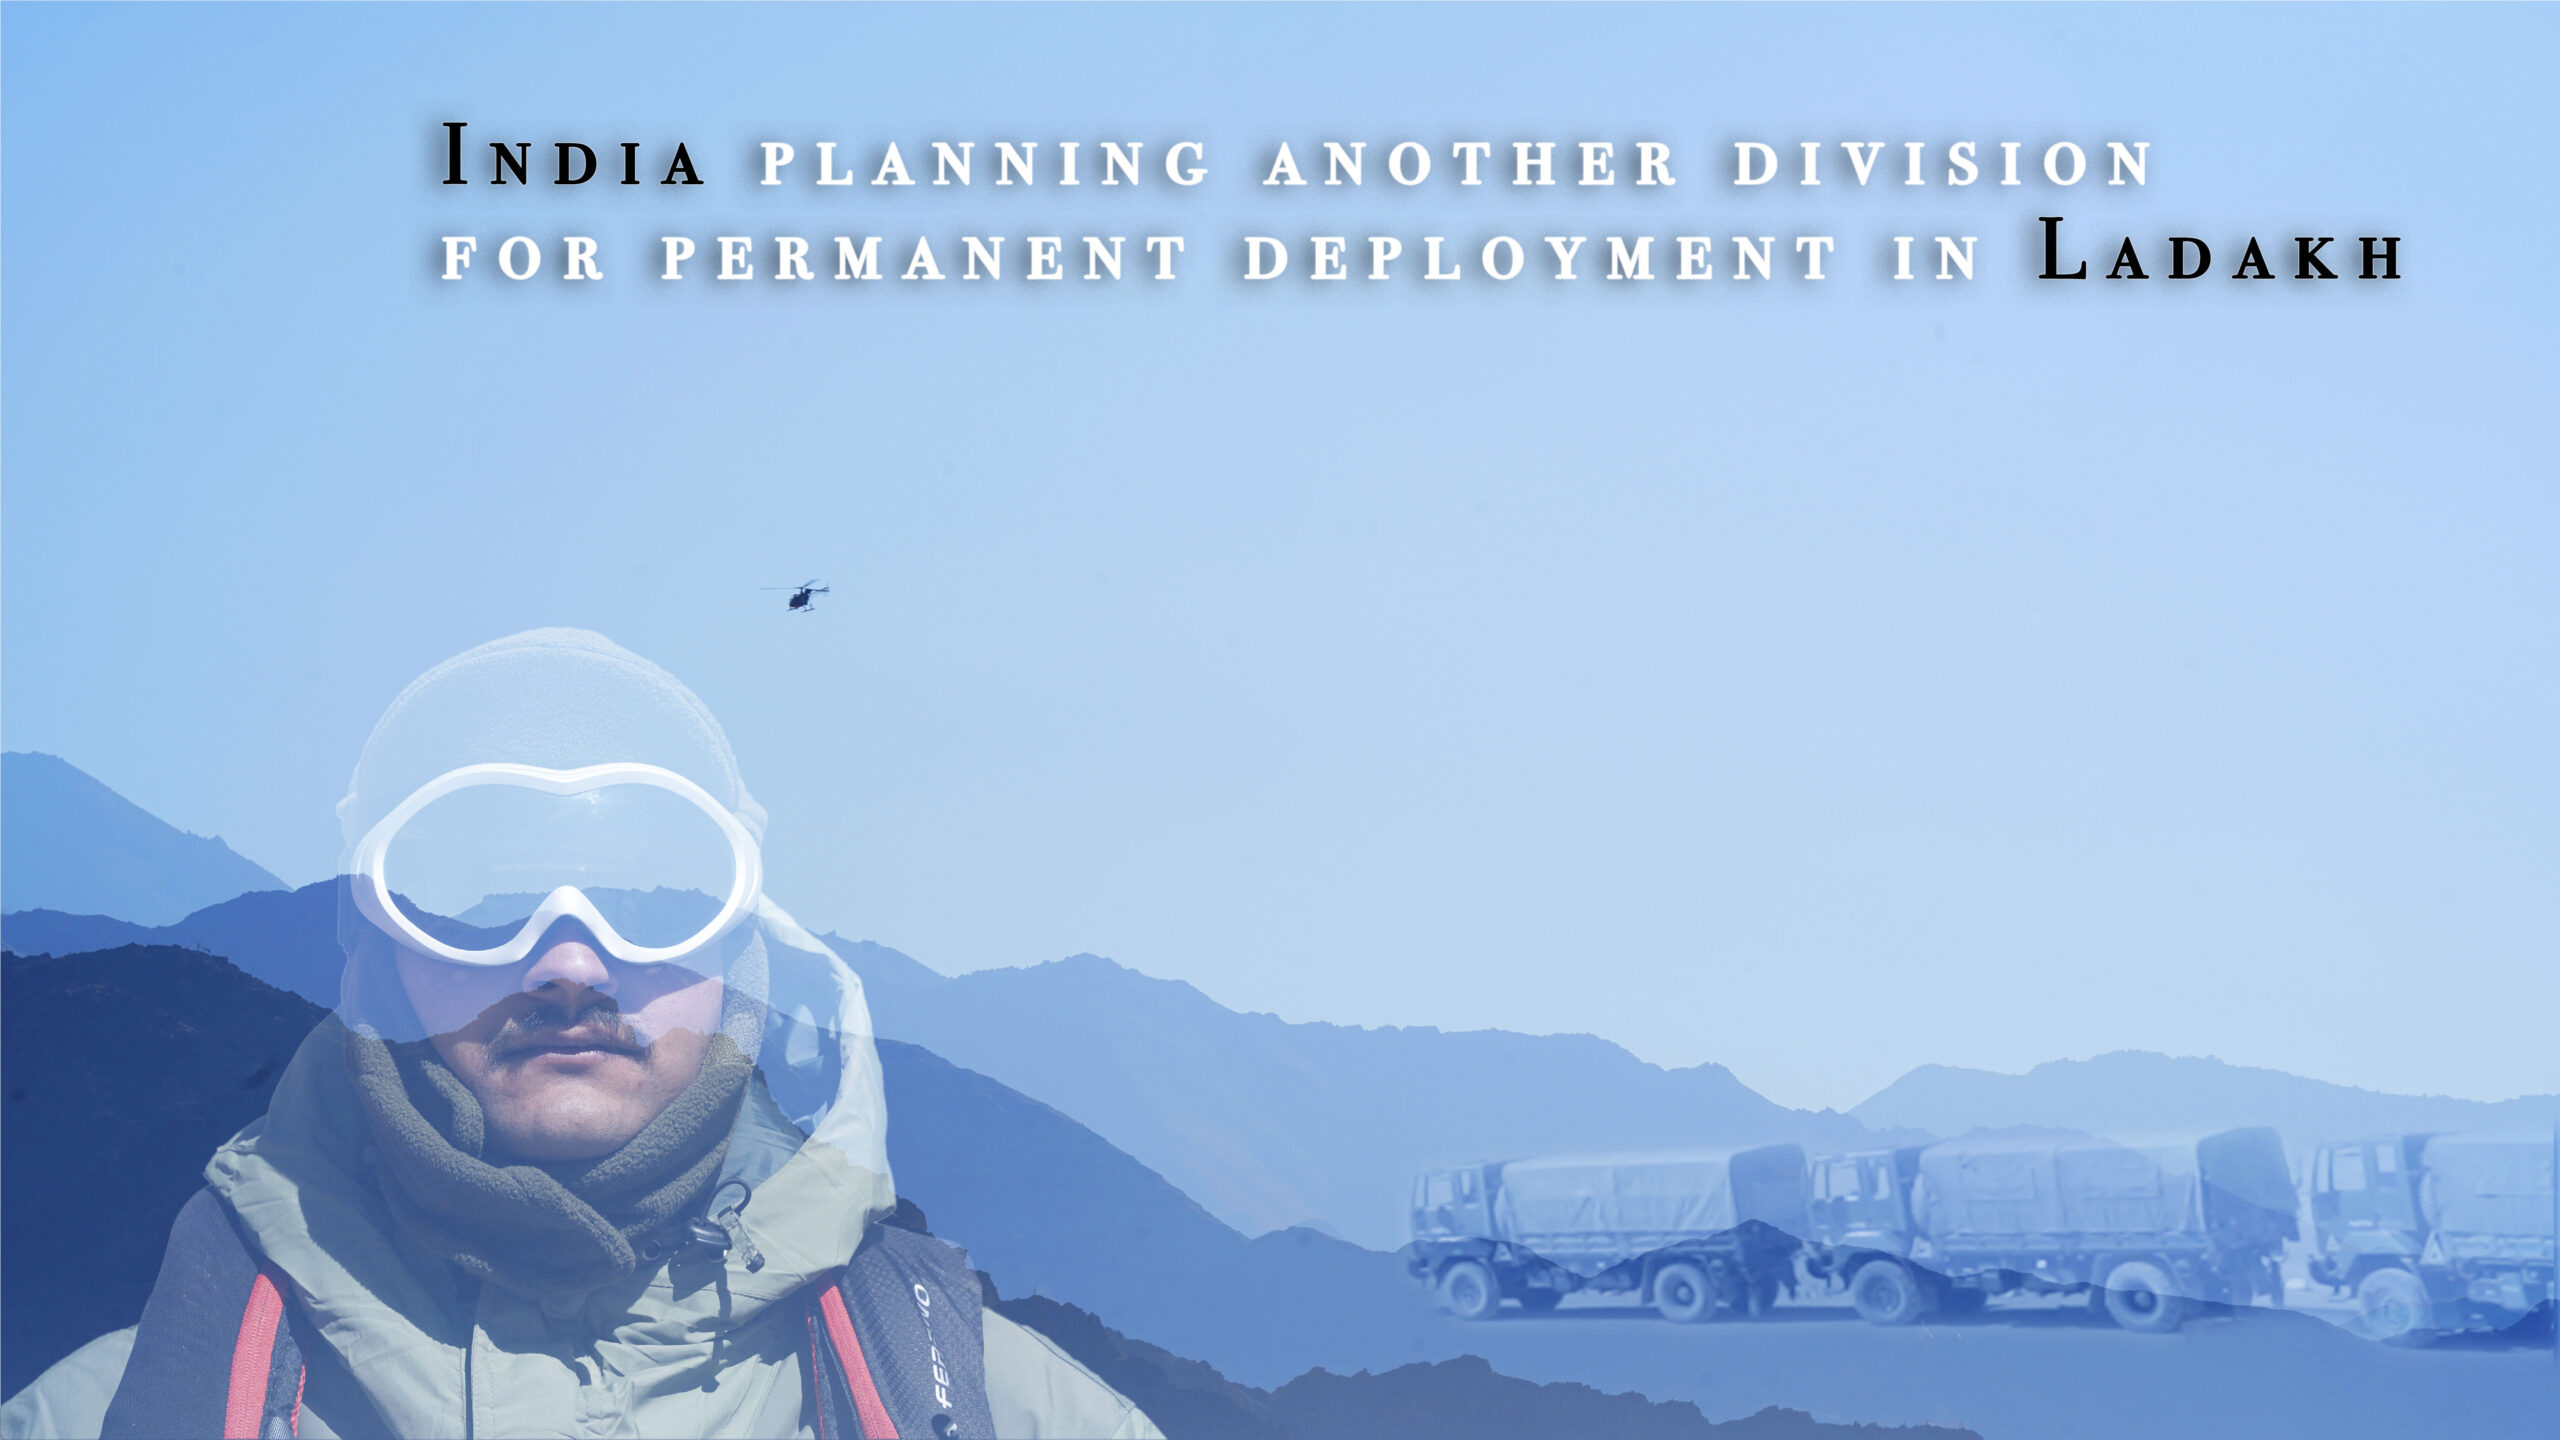 India planning another division for permanent deployment in Ladakh